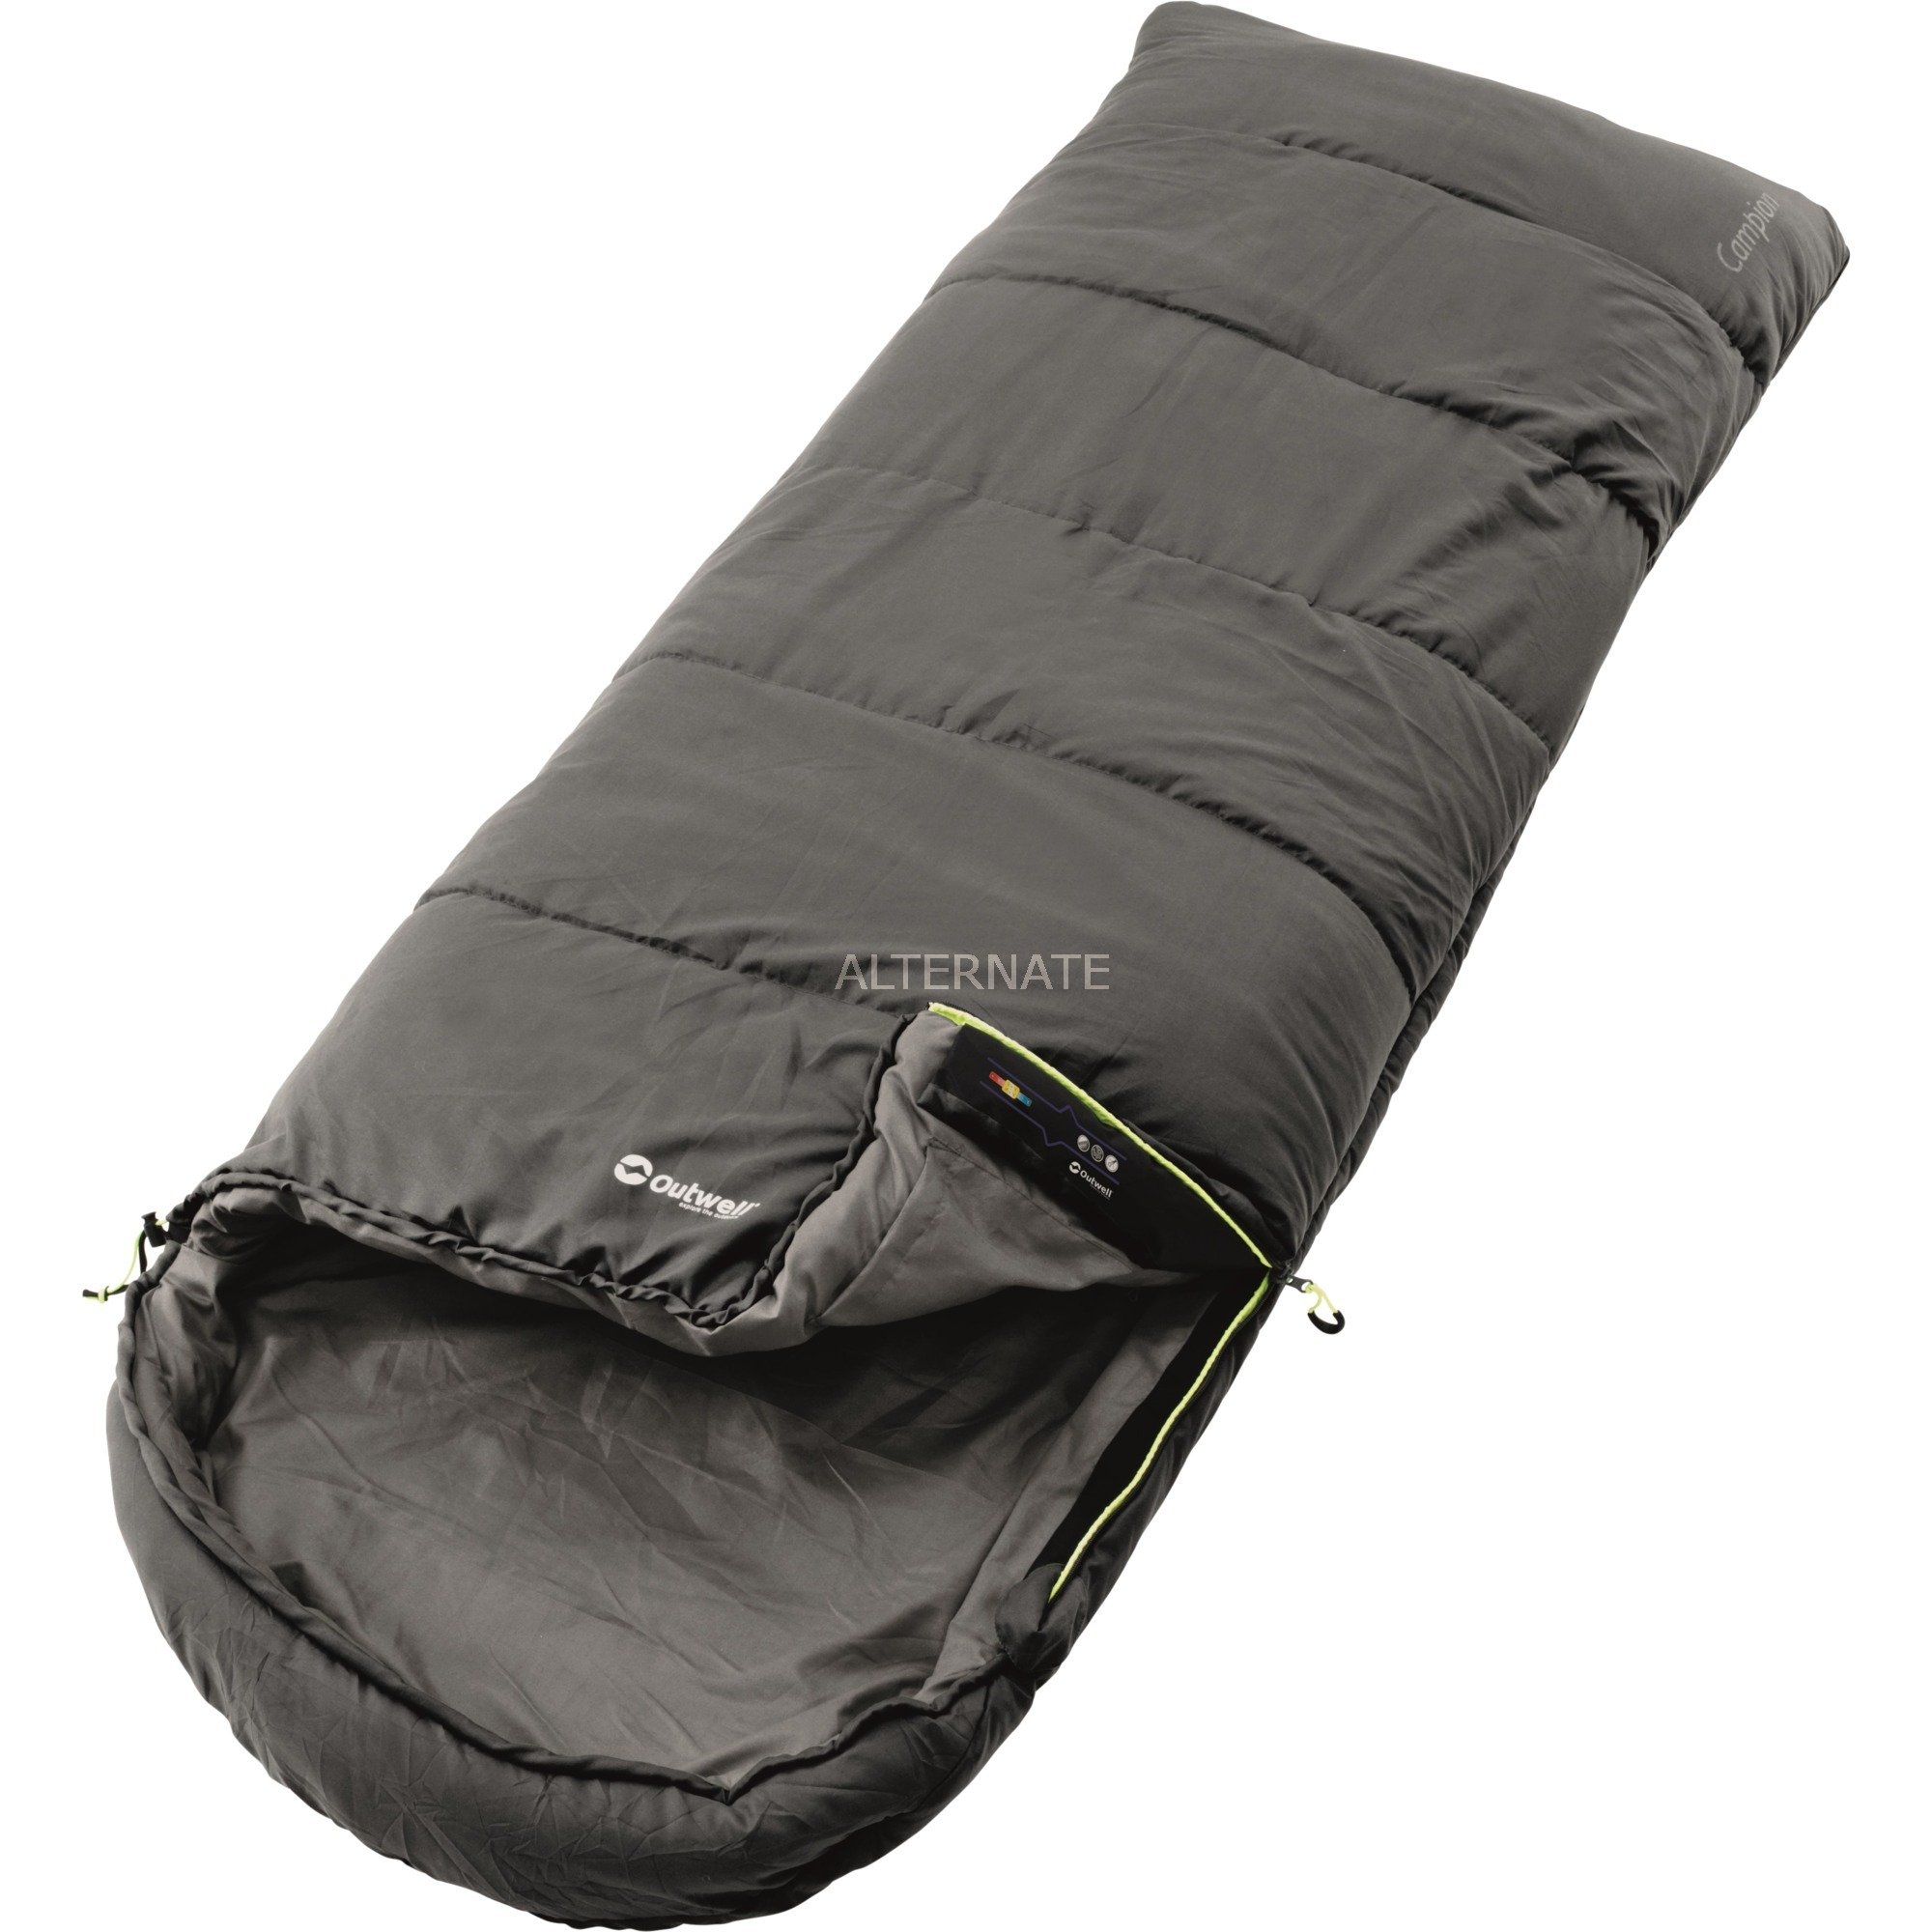 Campion Adultes Rectangular sleeping bag Polyester Noir, Sac de couchage